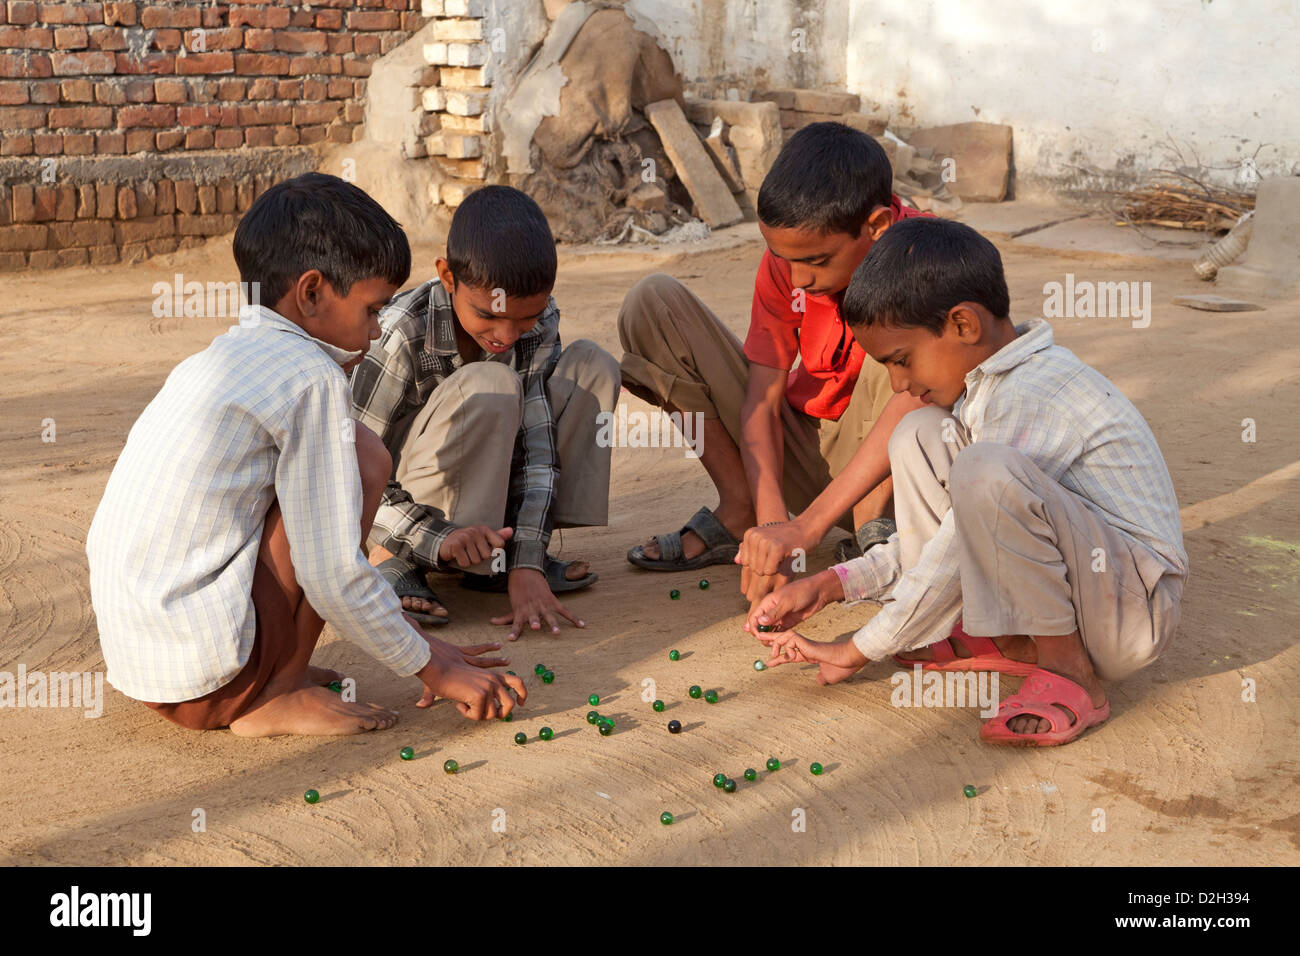 India, Uttar Pradesh, Agra, young children playing marbles outside village home - Stock Image